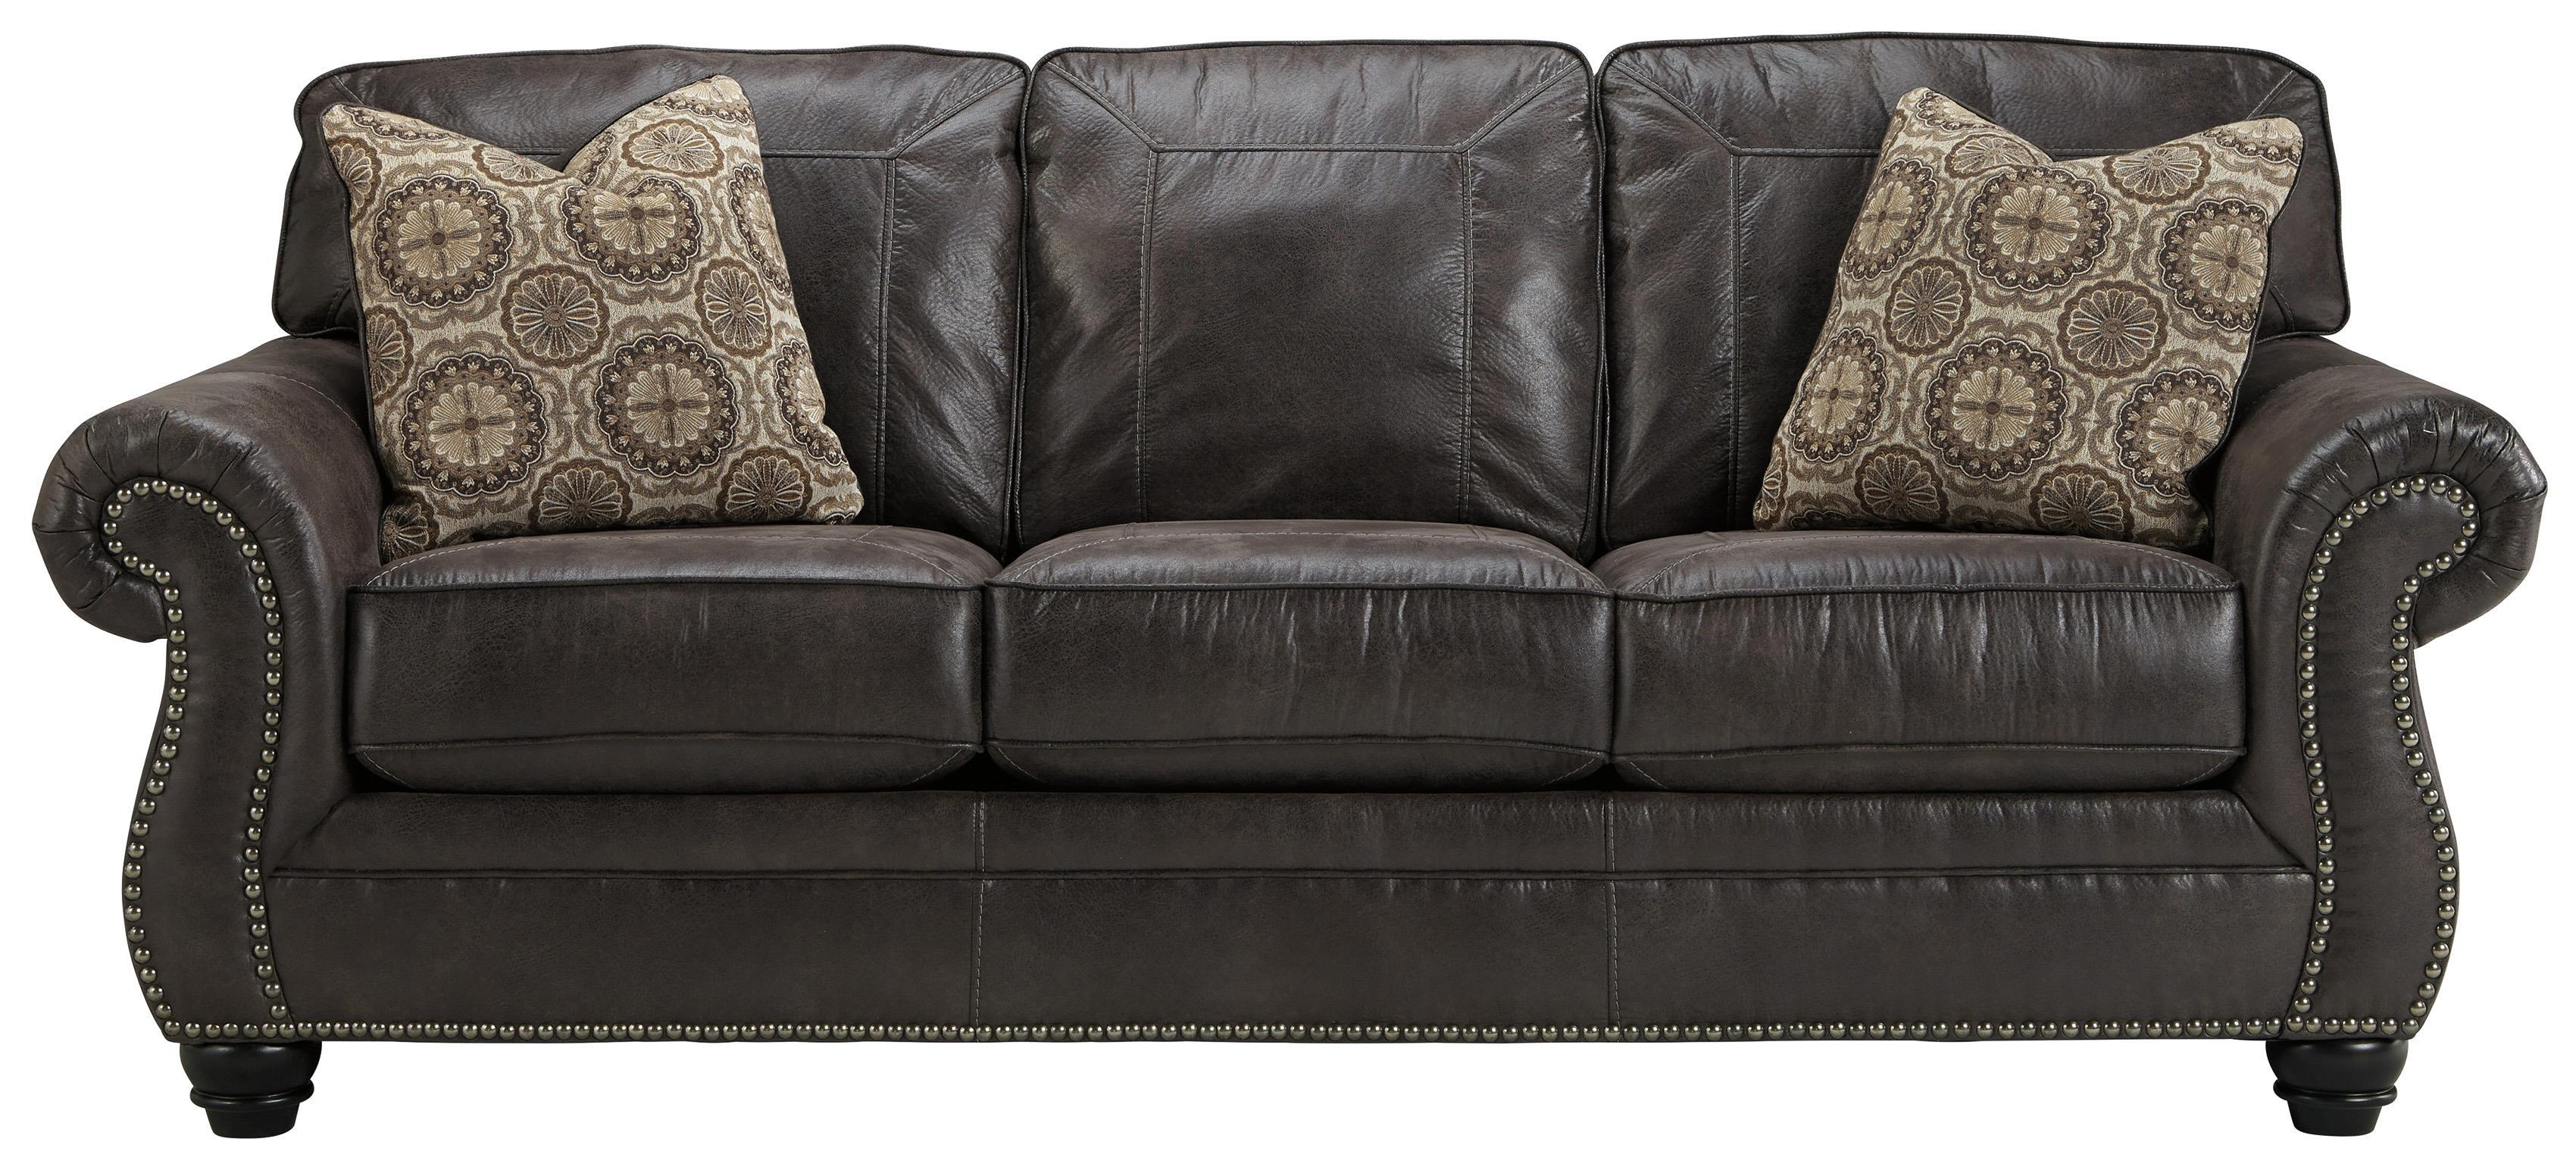 Faux Leather Queen Sofa Sleeper With Rolled Arms And Nailhead Trim With Regard To Faux Leather Sleeper Sofas (View 7 of 20)